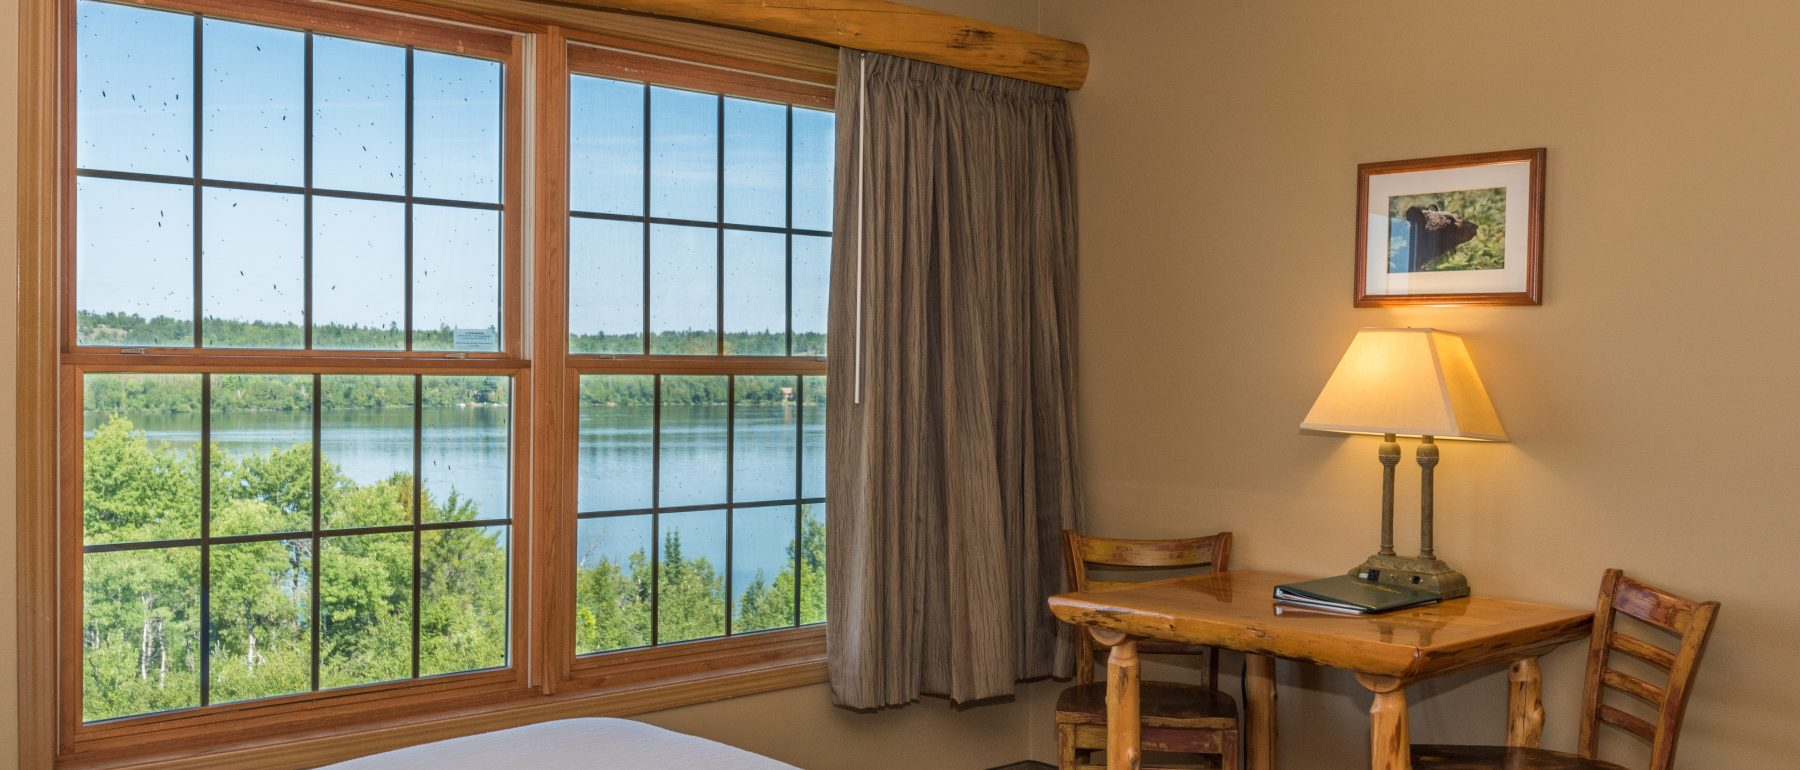 Lake view Lodging at Grand Ely Lodge